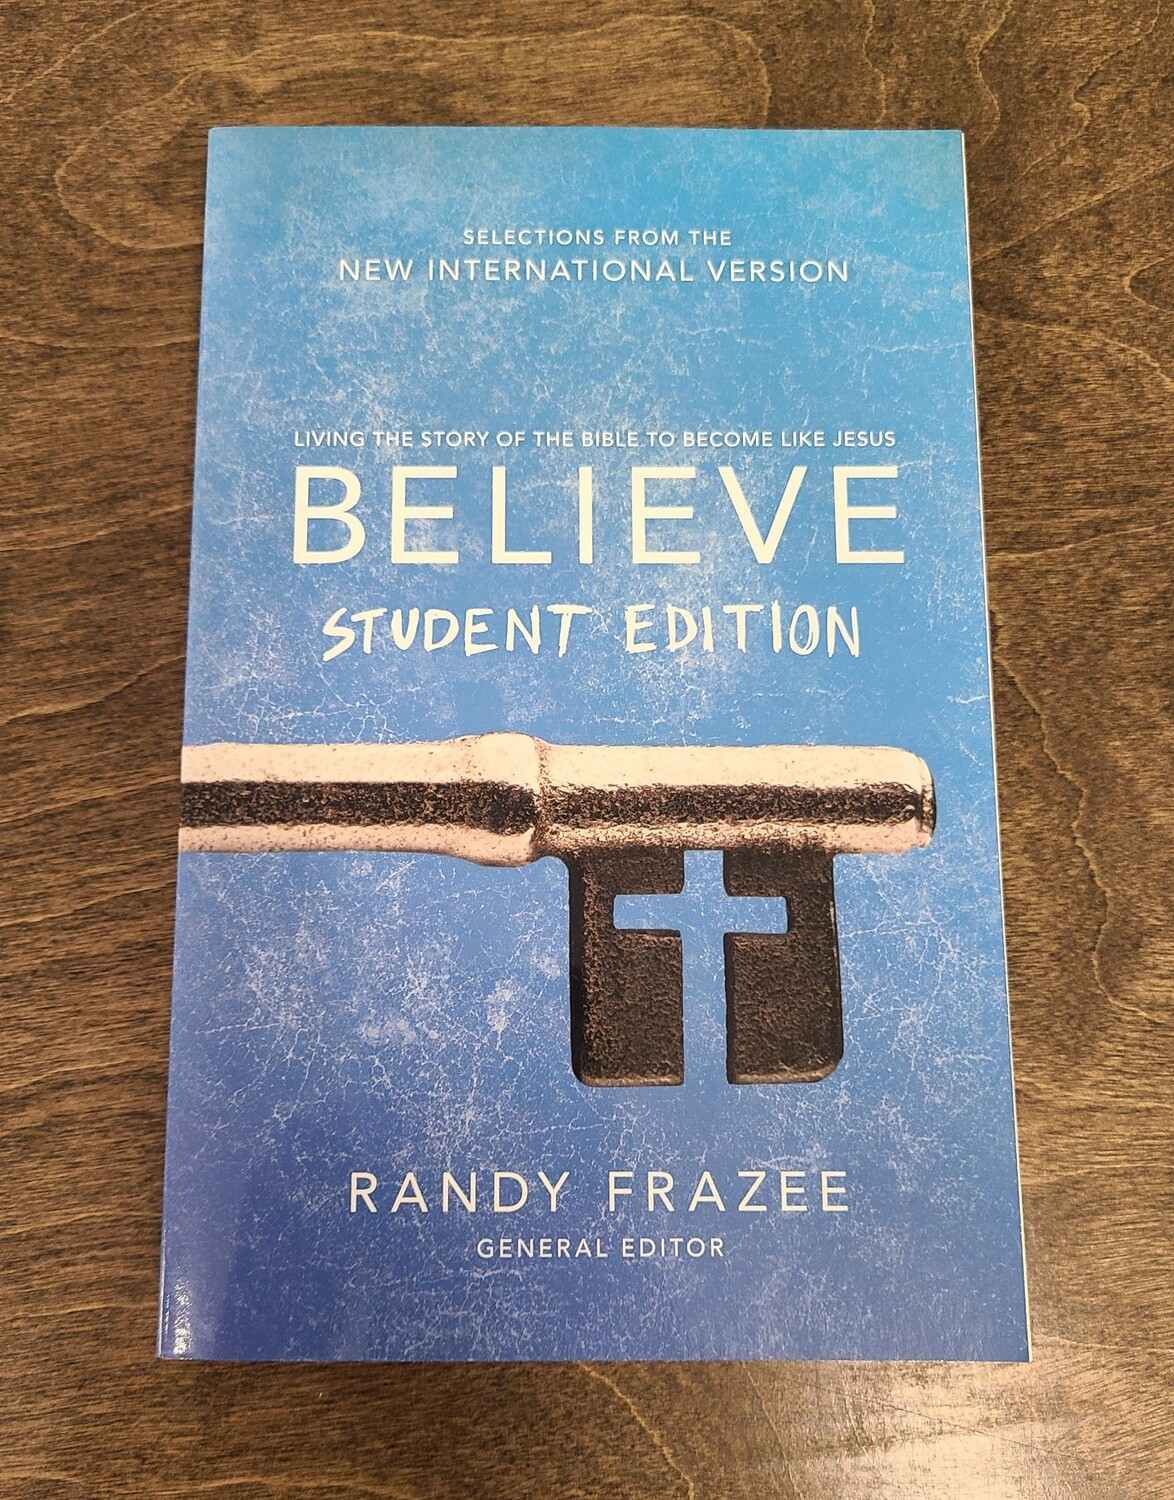 NIV Believe: Student Edition by Randy Frazee